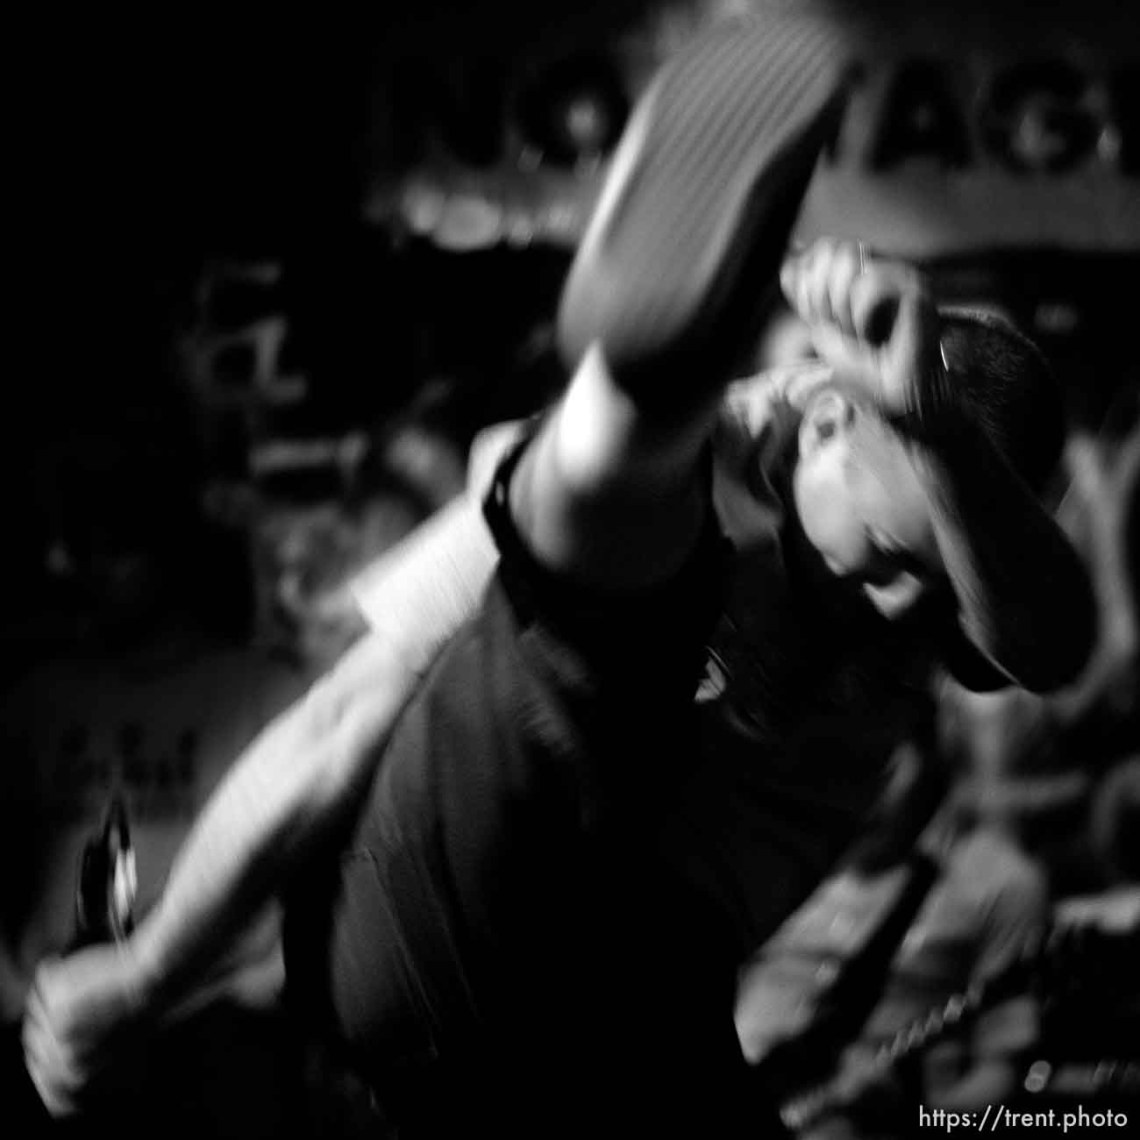 Joey Vela, Second Coming at gilman st. 4.16.2005